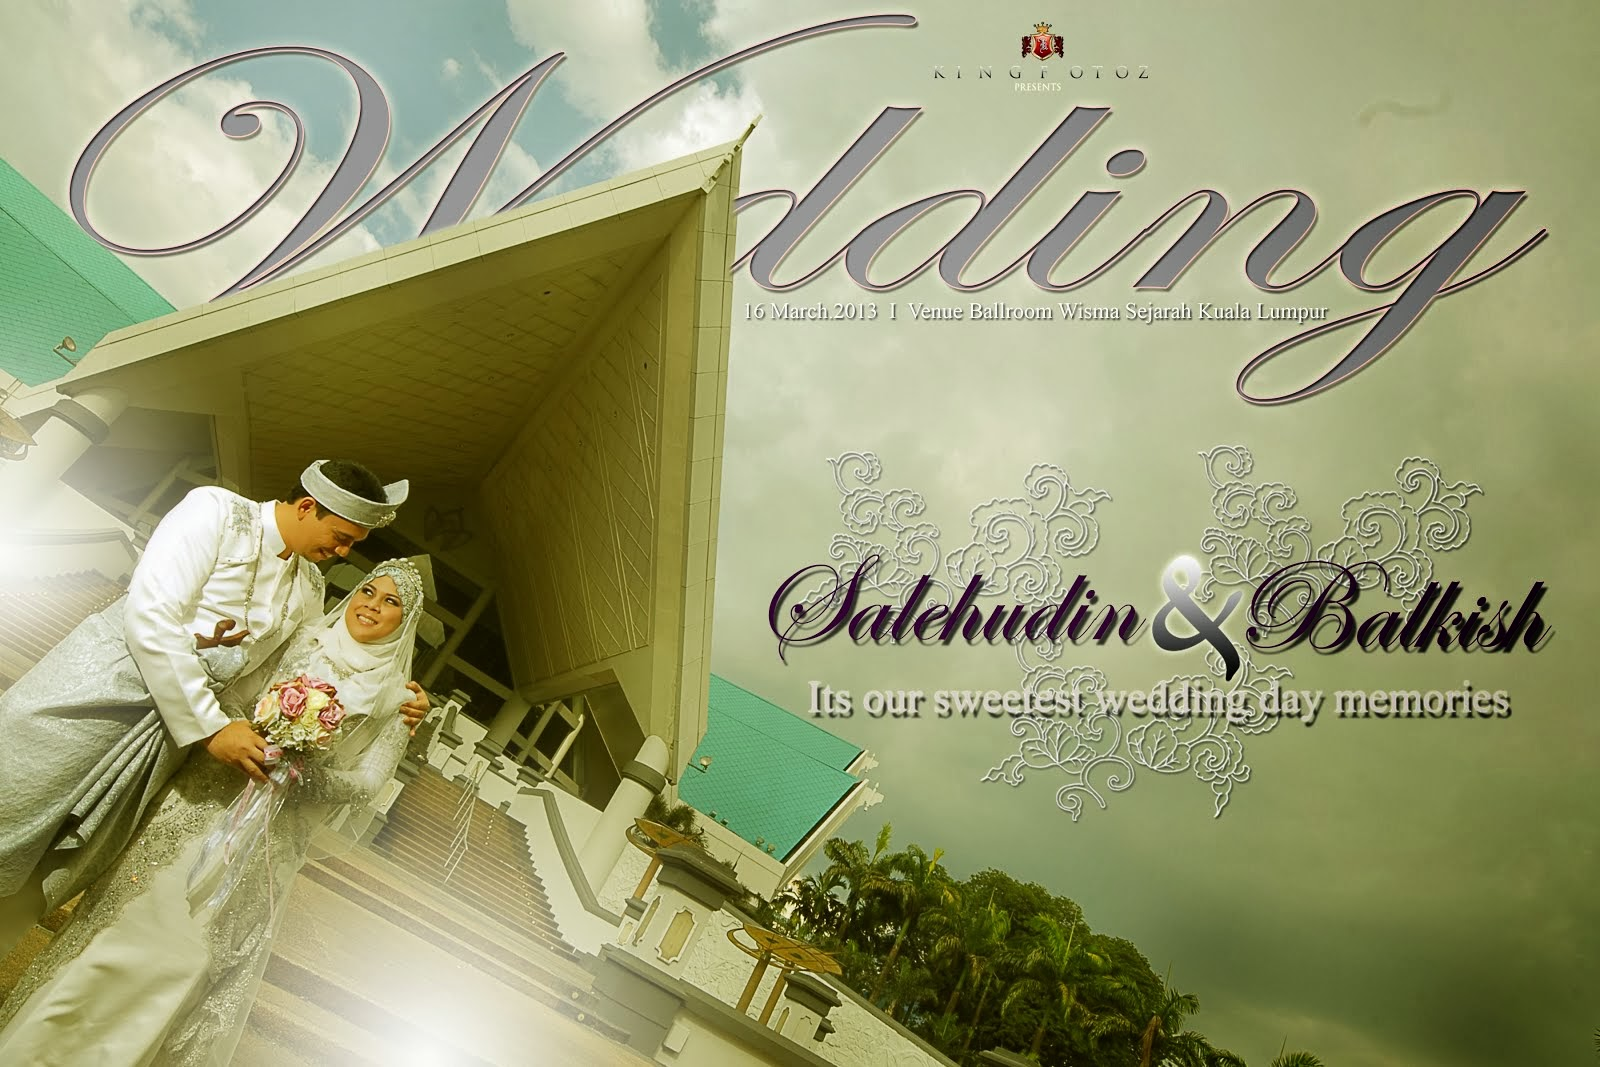 Sallehudin&Balkish Wedding Day